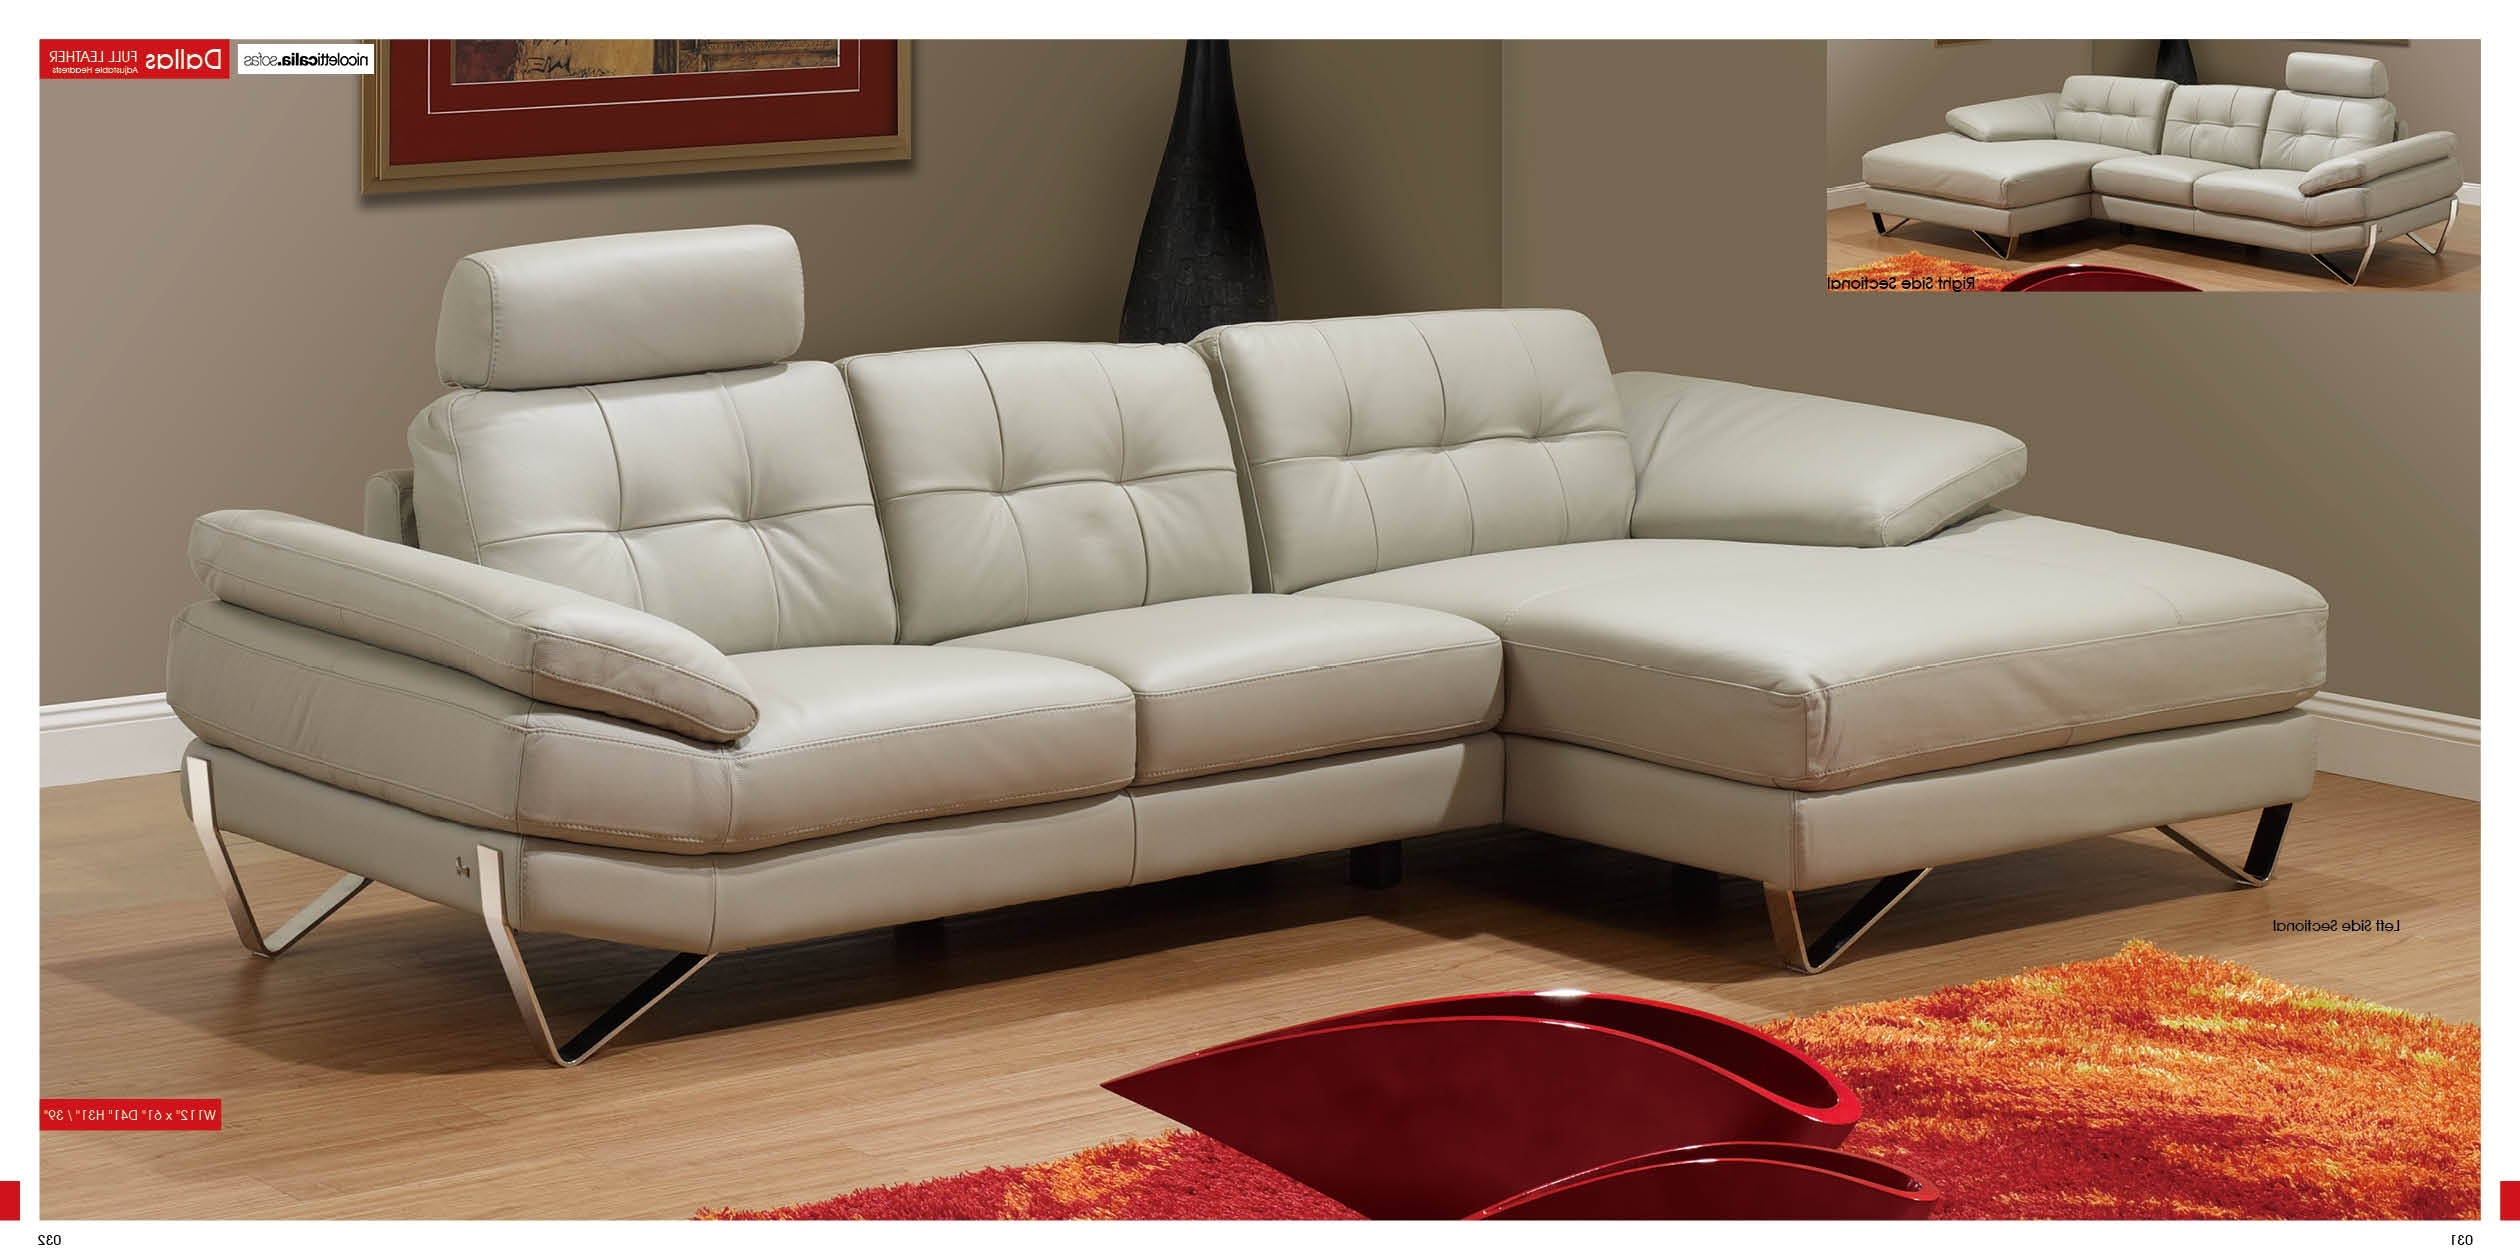 Fashionable Dallas Texas Sectional Sofas For Sectional Sofa Design: Comfort Sectional Sofas Dallas Dallas (View 4 of 15)